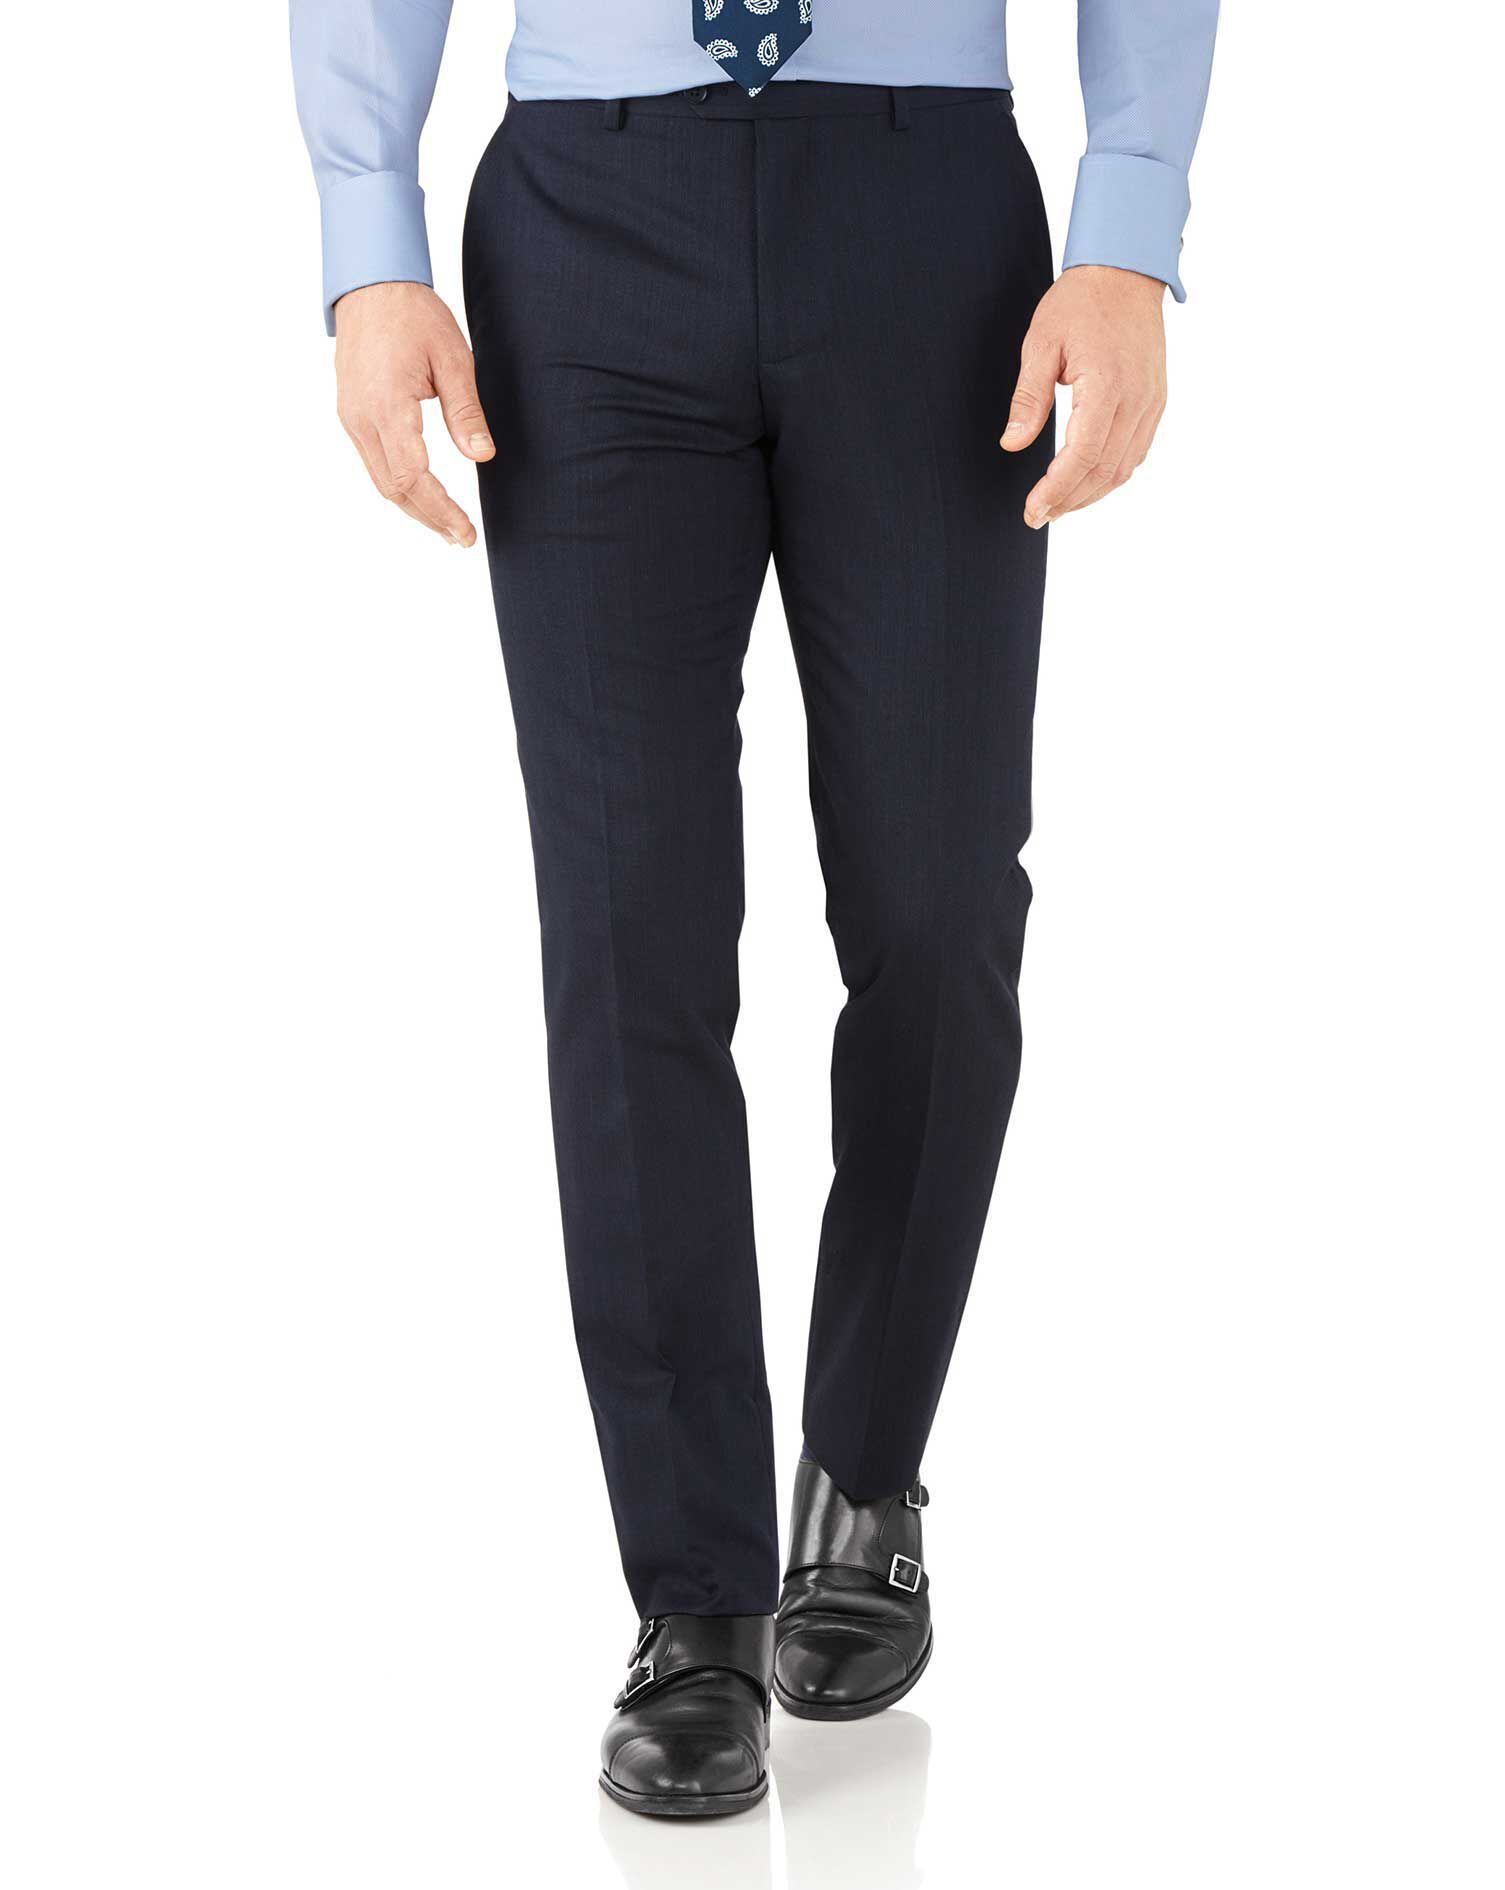 Navy Slim Fit Hairline Business Suit Trousers Size W34 L30 by Charles Tyrwhitt